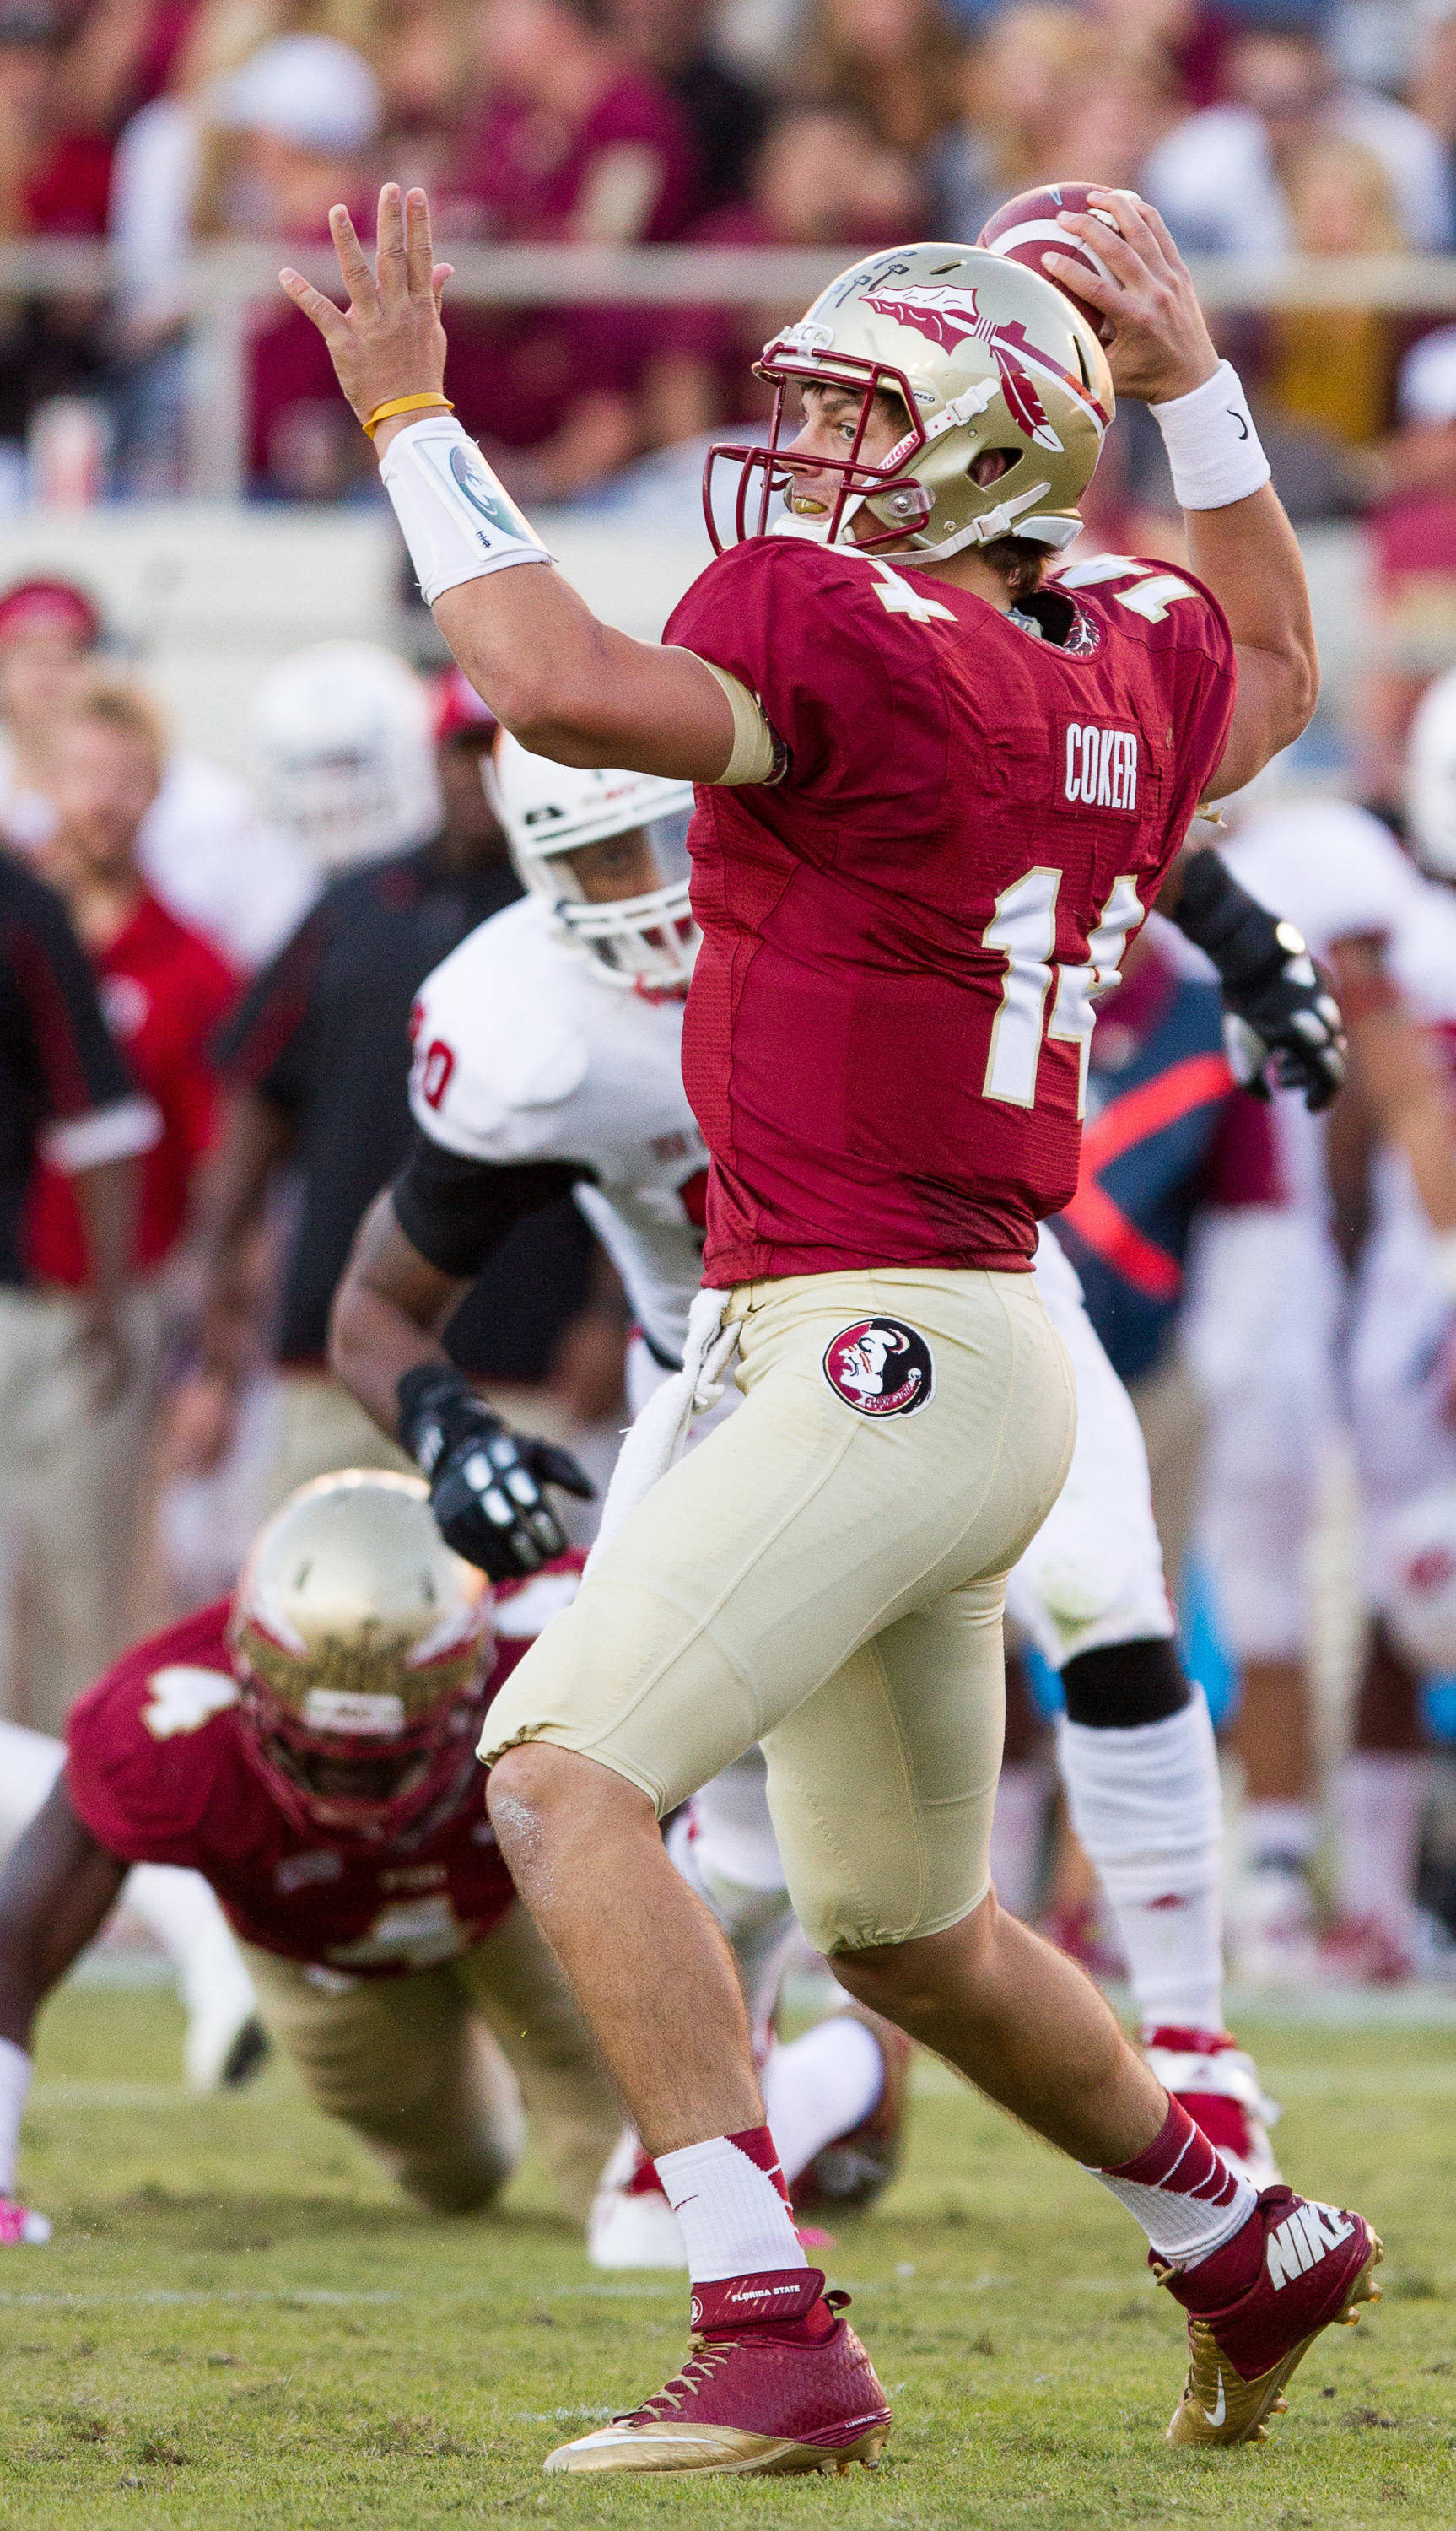 Jacob Coker (14) makes a pass during FSU Football's 49-17 win over NC State on Saturday, October 26, 2013 in Tallahassee, Fla. Photo by Michael Schwarz.